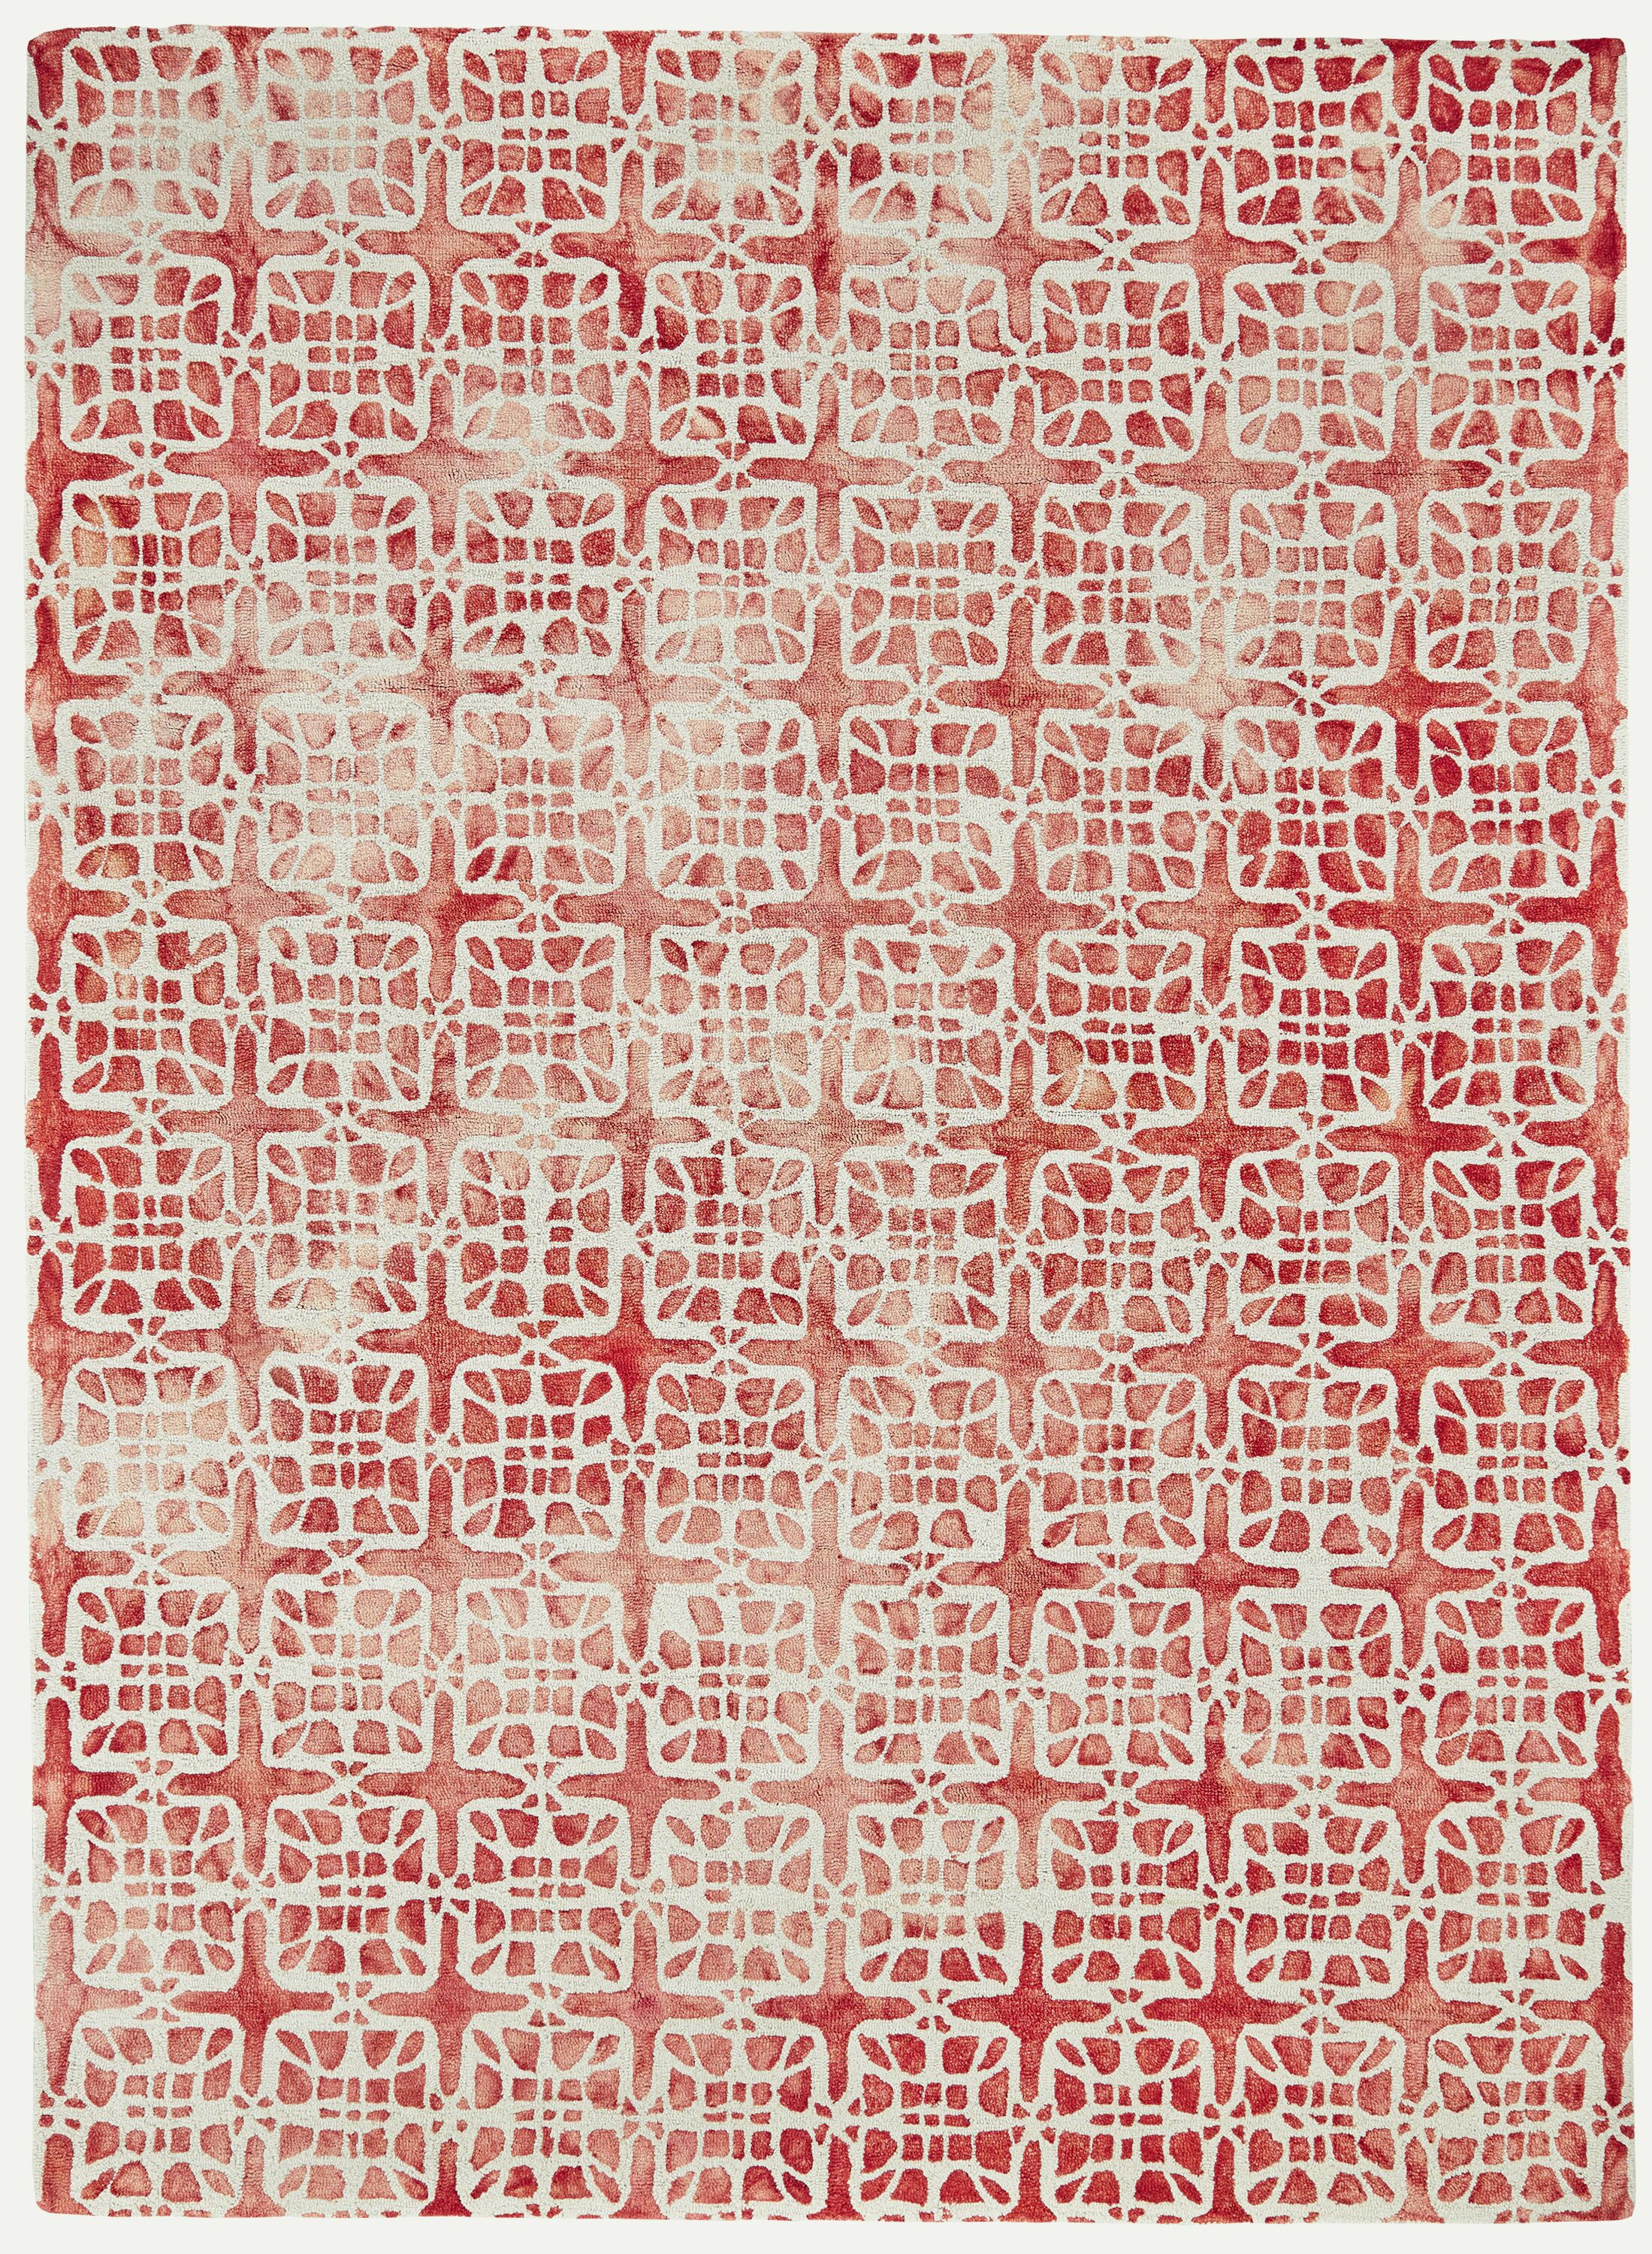 Frederick Hand-Hooked Wool Pomegranate Area Rug Rug Size: Round 10'